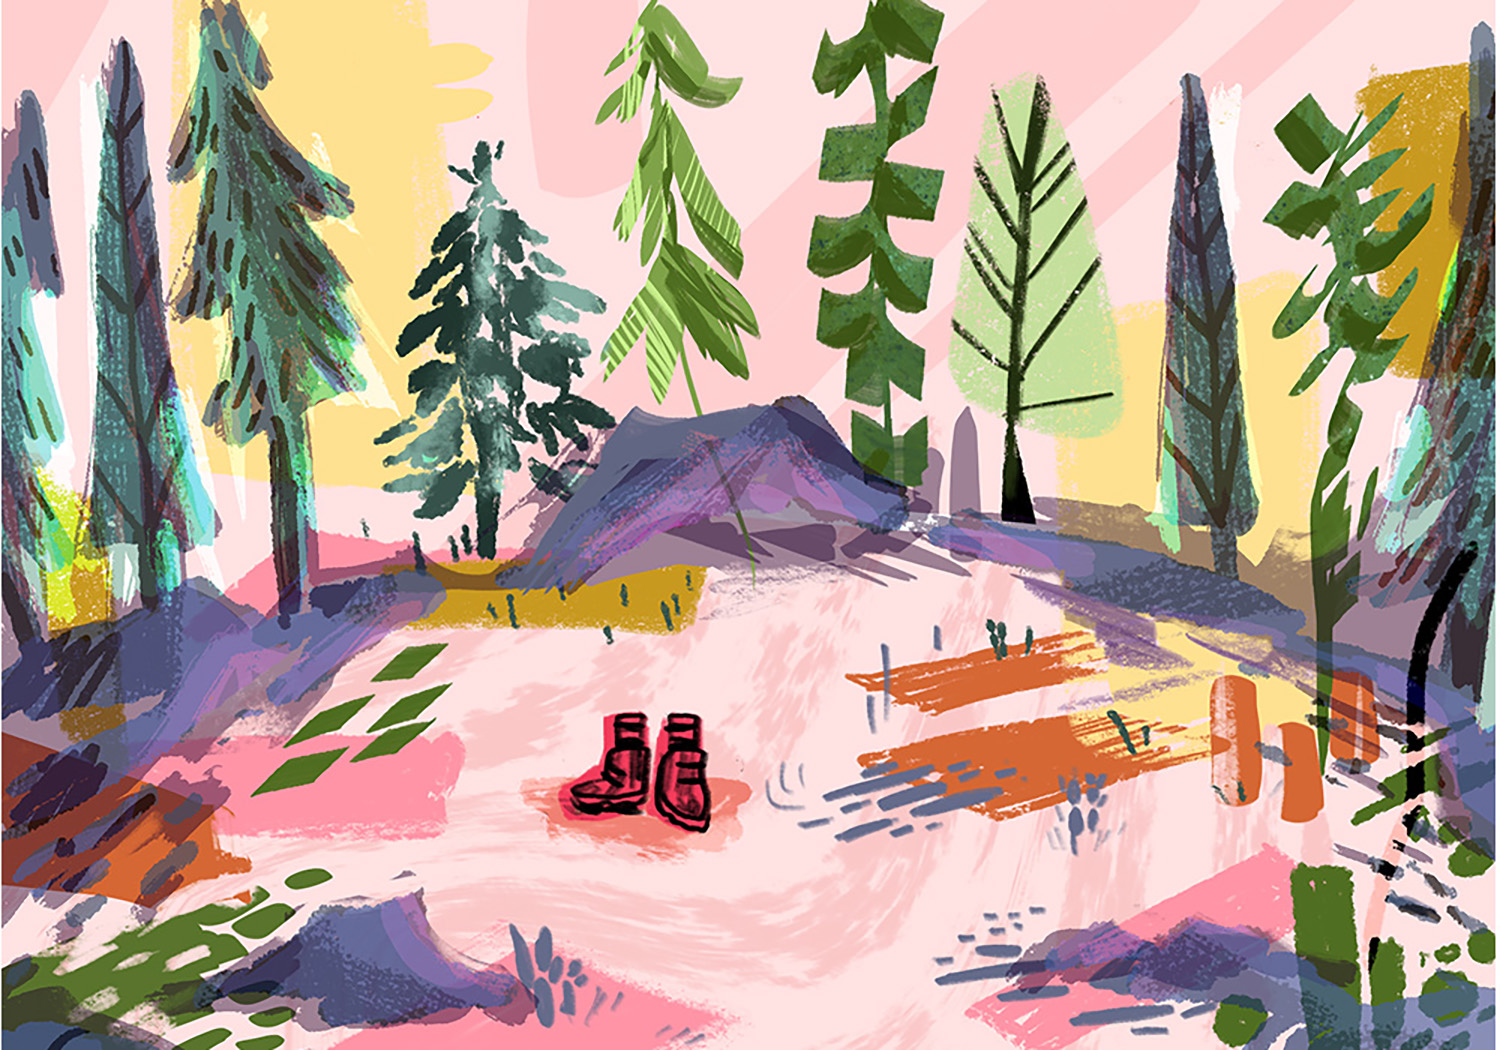 environment study based on seasons change (summer forest) - photoshop